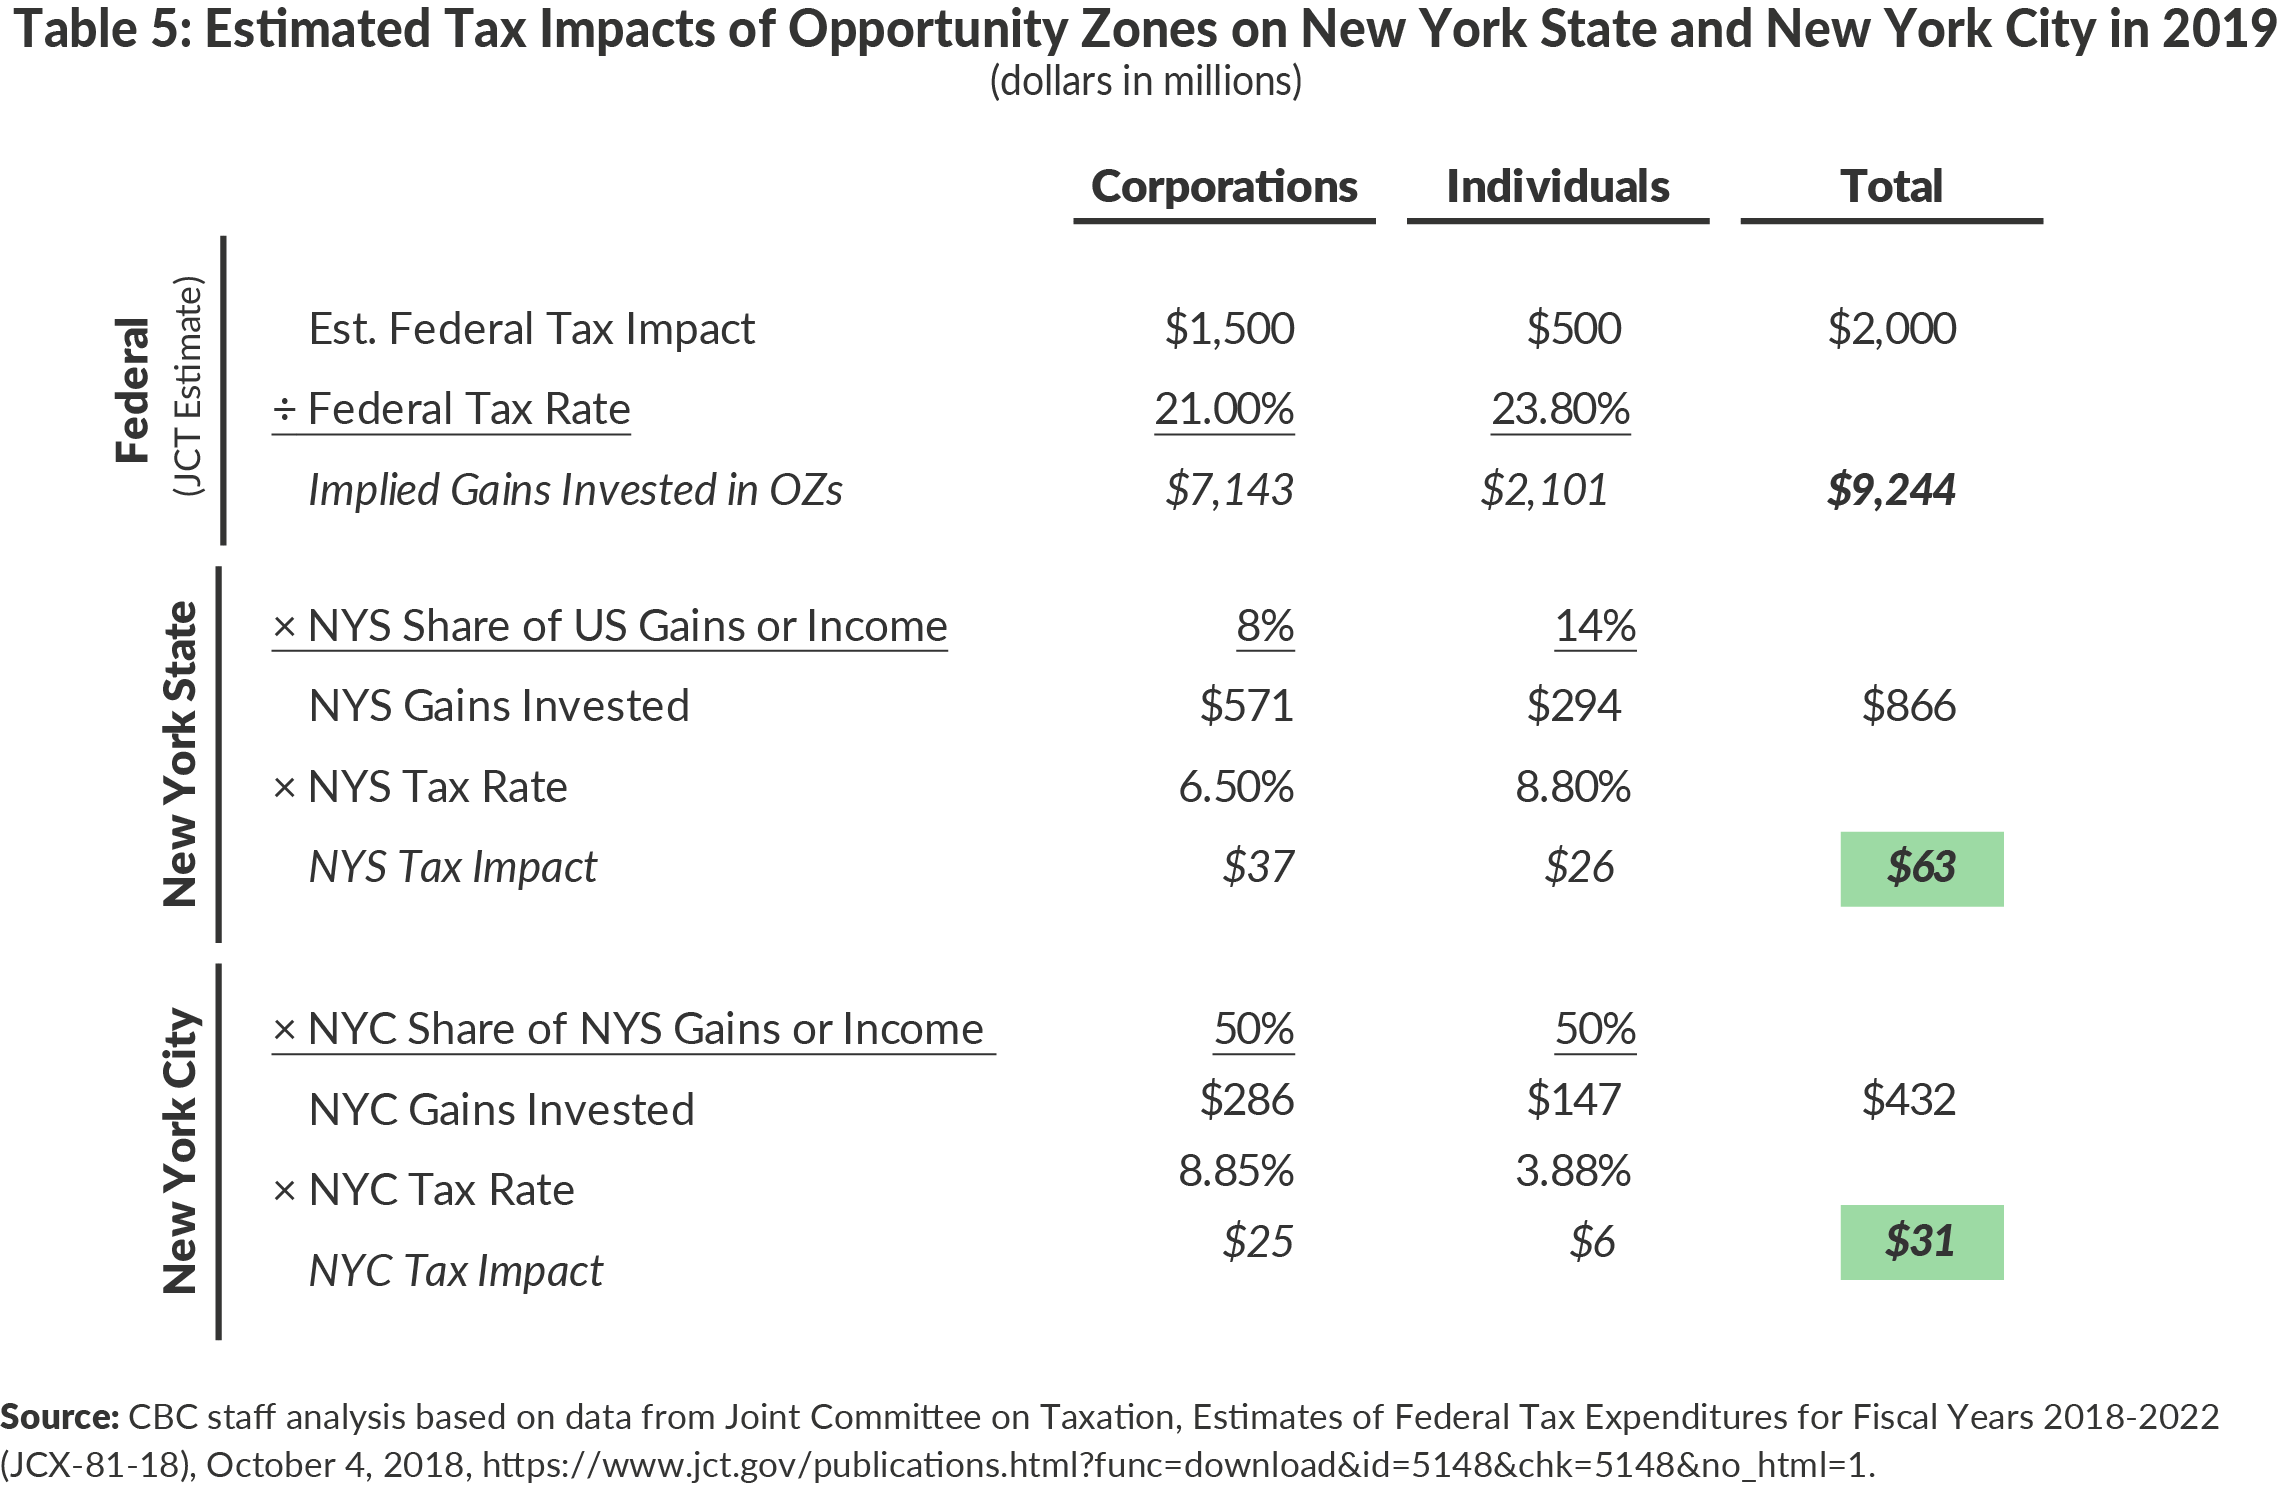 Table 5. Estimated Tax Impacts of Opportunity Zones on New York State and New York City in 2019